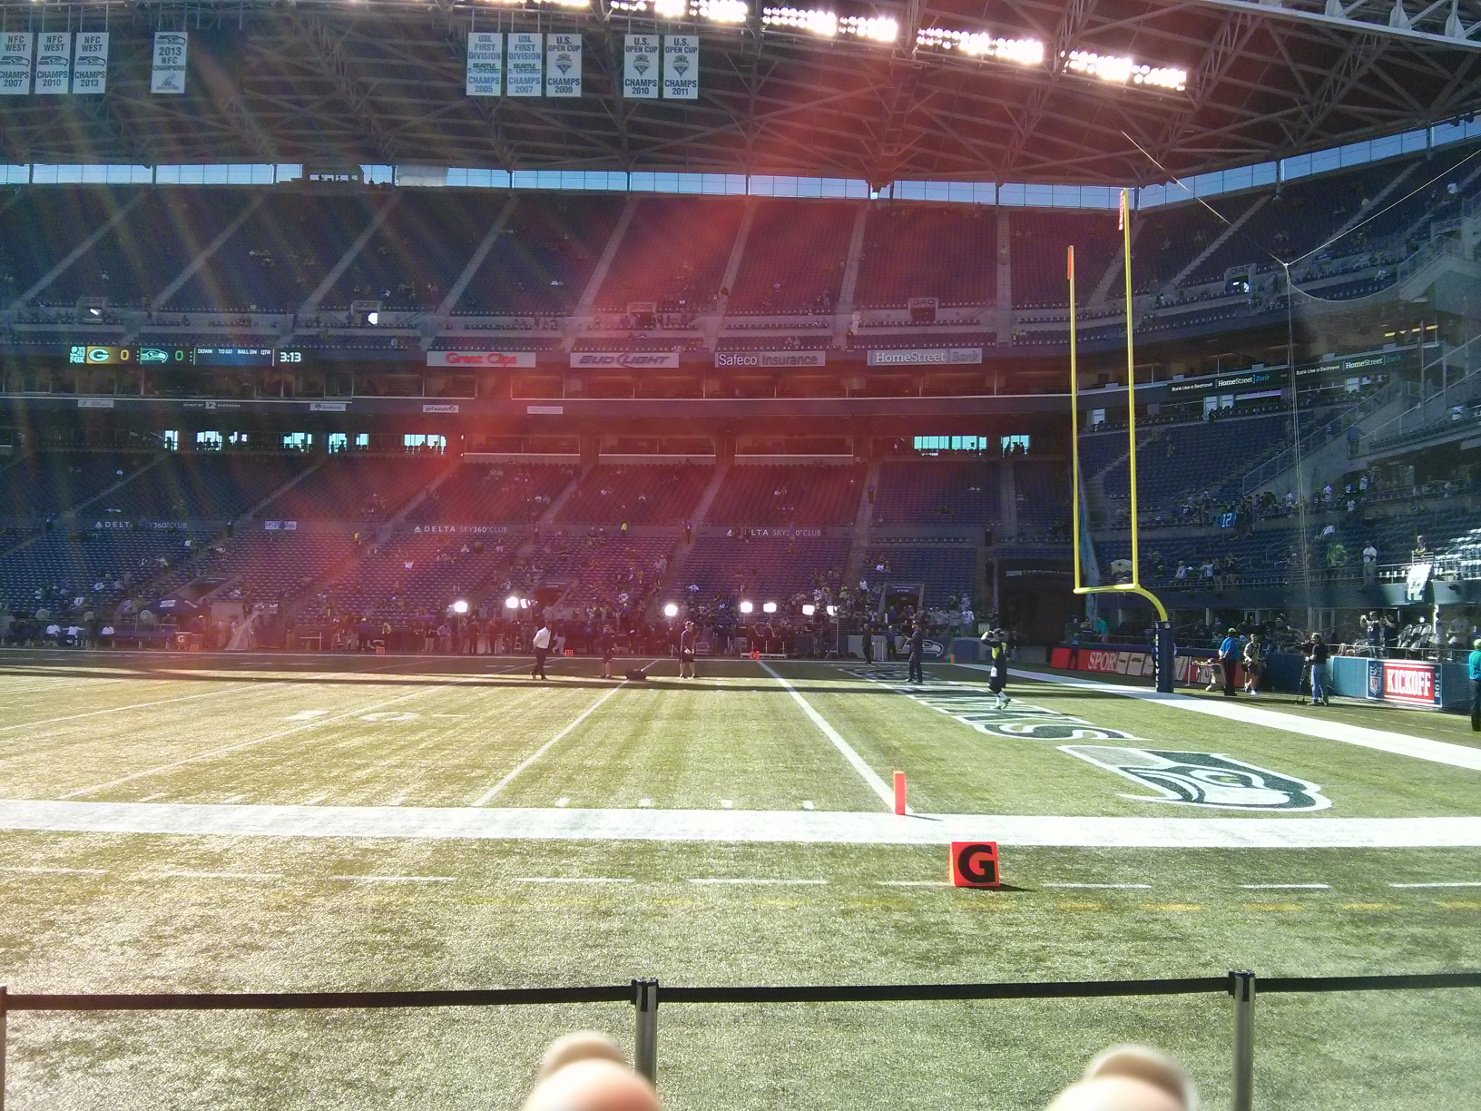 Sept 4th 2014, 1st game of the season.  Seahawks vs. Packers.  Row A at the end zone, we did it big.